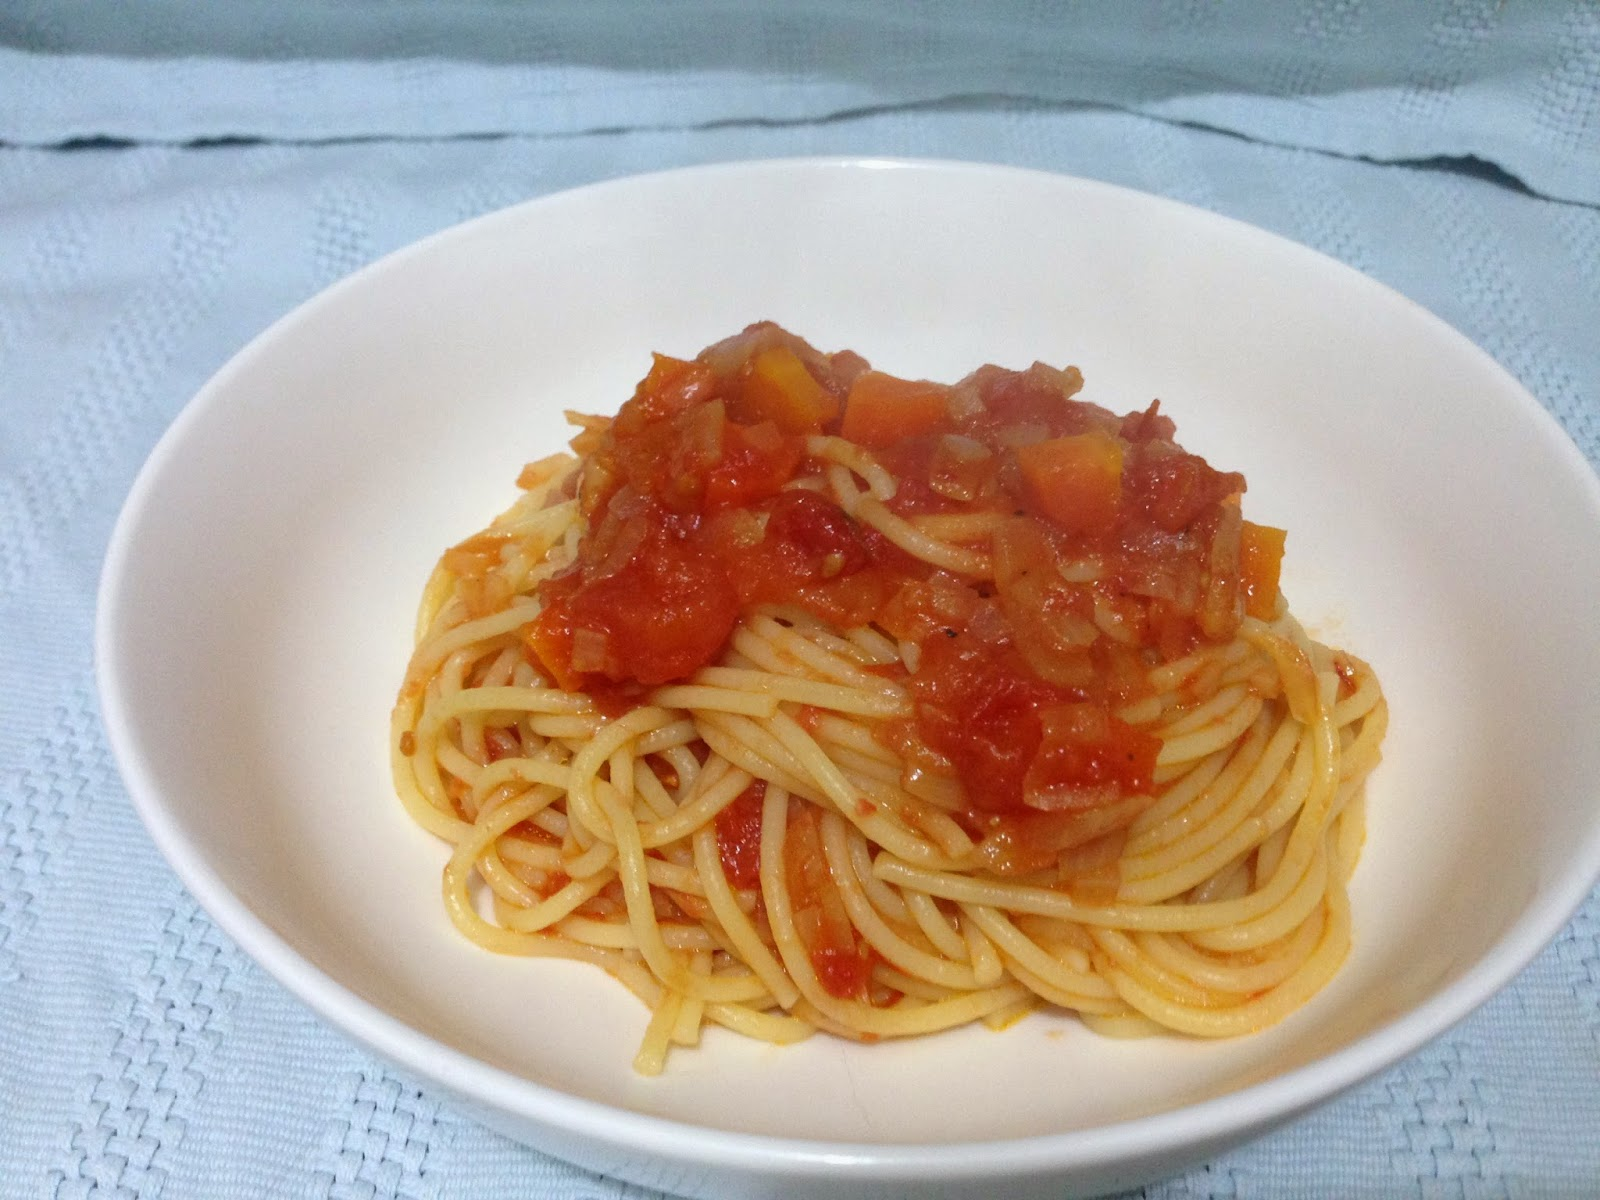 Tomato Sauce with Carrots and Onions from My Berlin Kitchen.